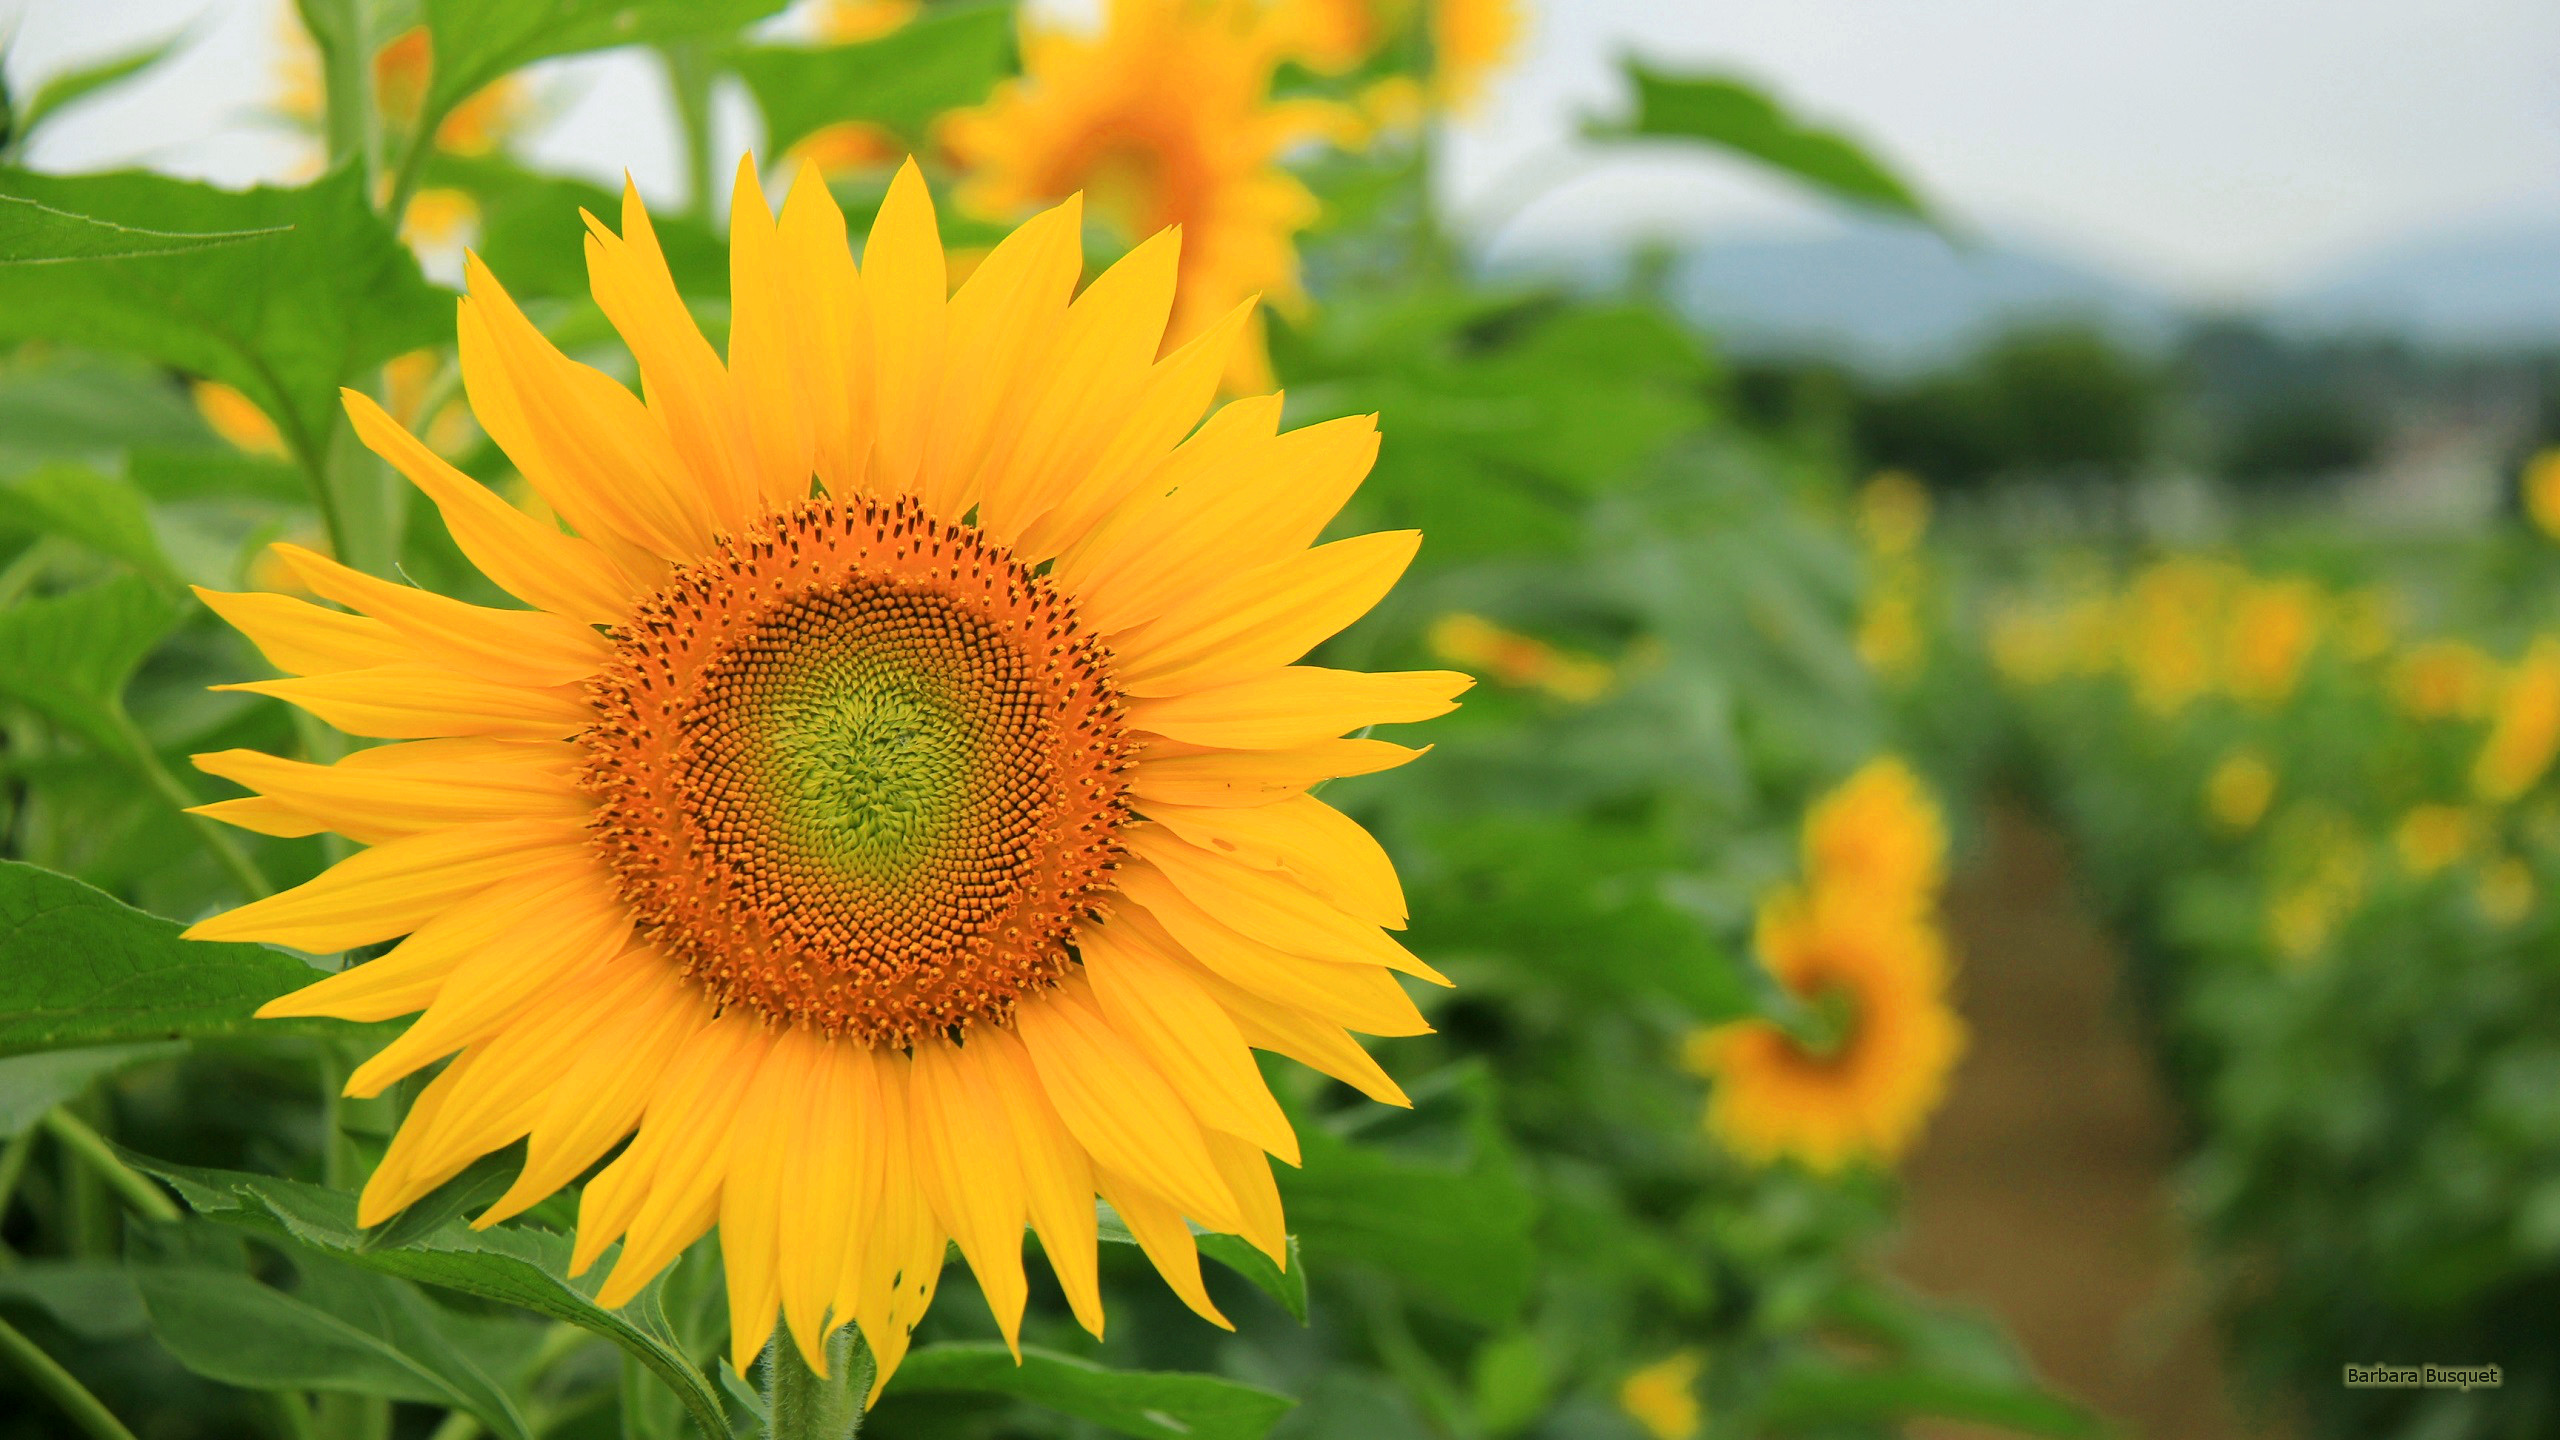 sunflowers - barbaras hd wallpapers